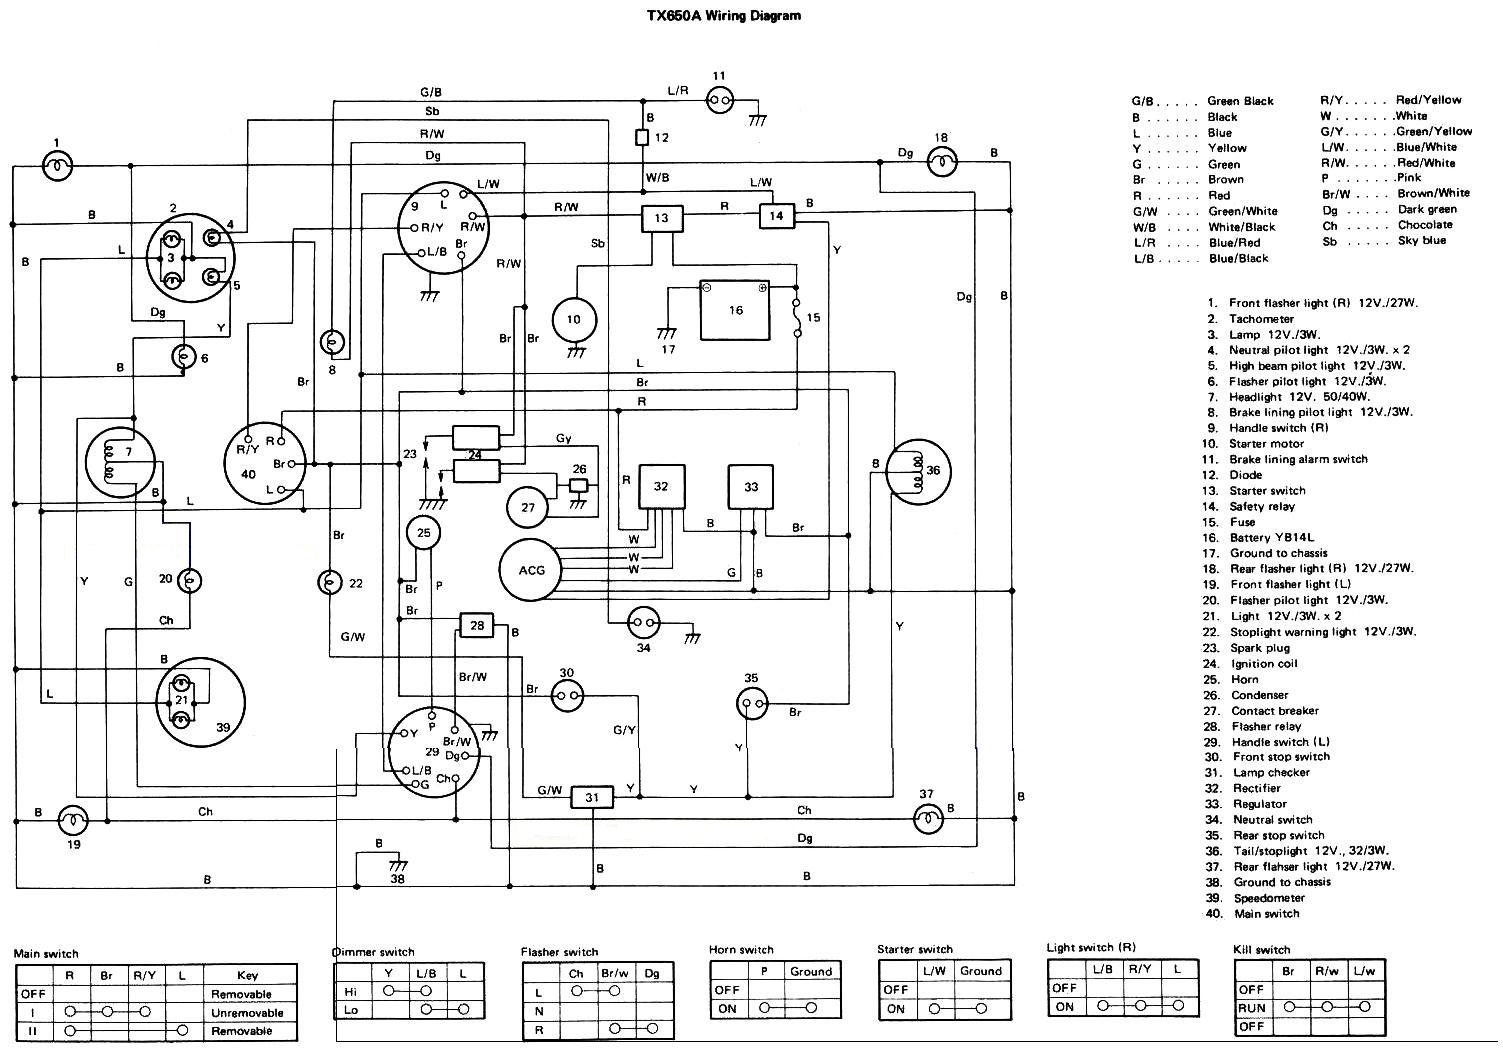 1980 Xt250 Wiring Diagram 1981 yamaha sr250 wiring diagram ... on